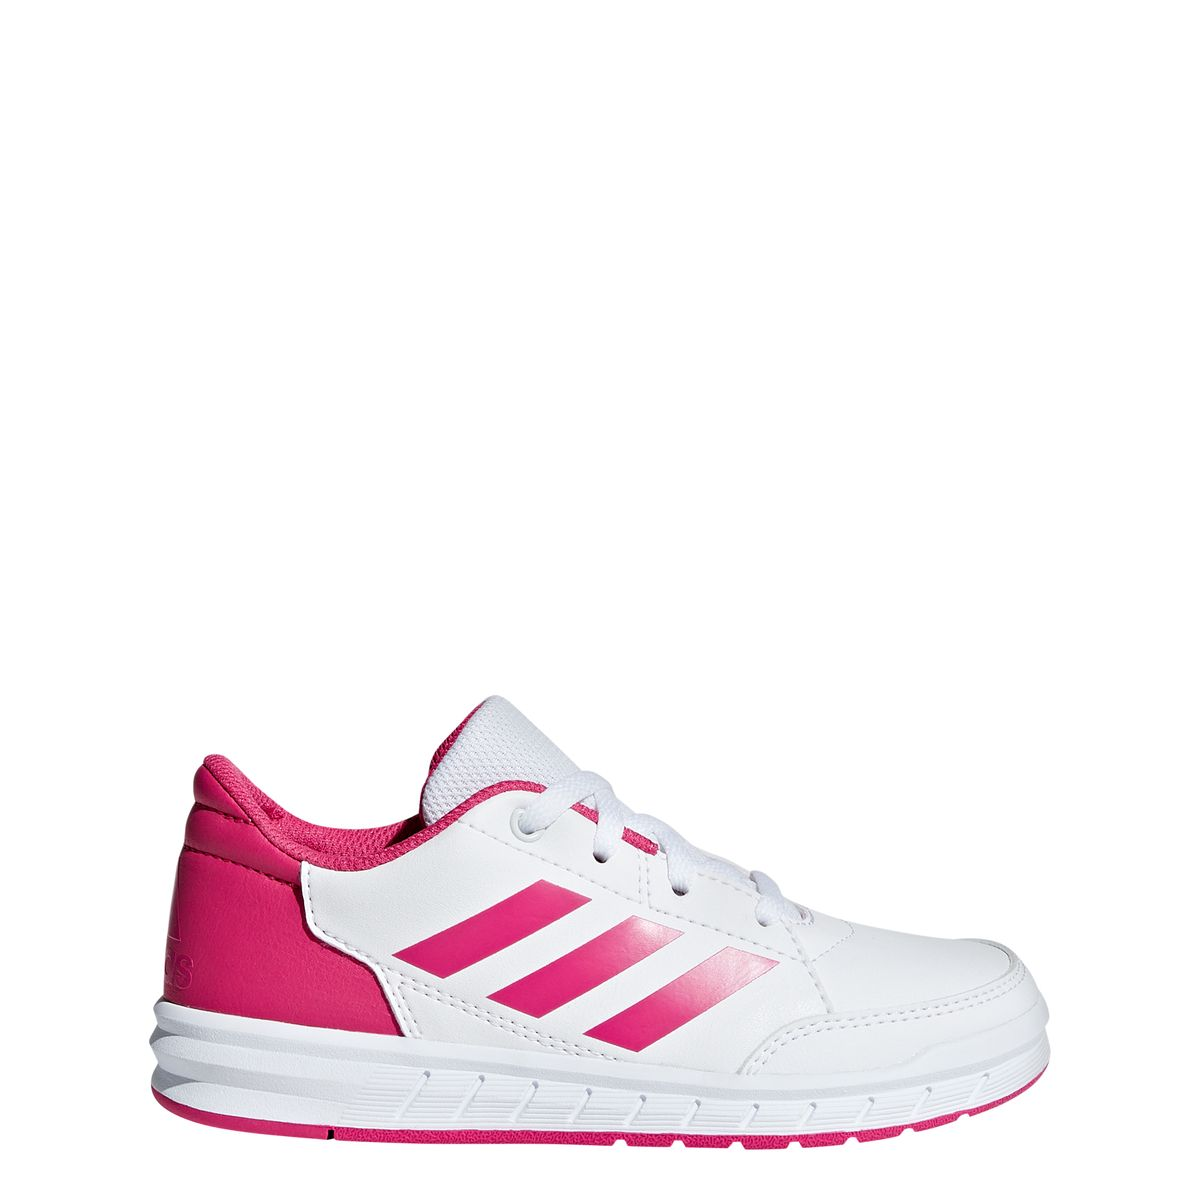 chaussure adidas enfant taille 28